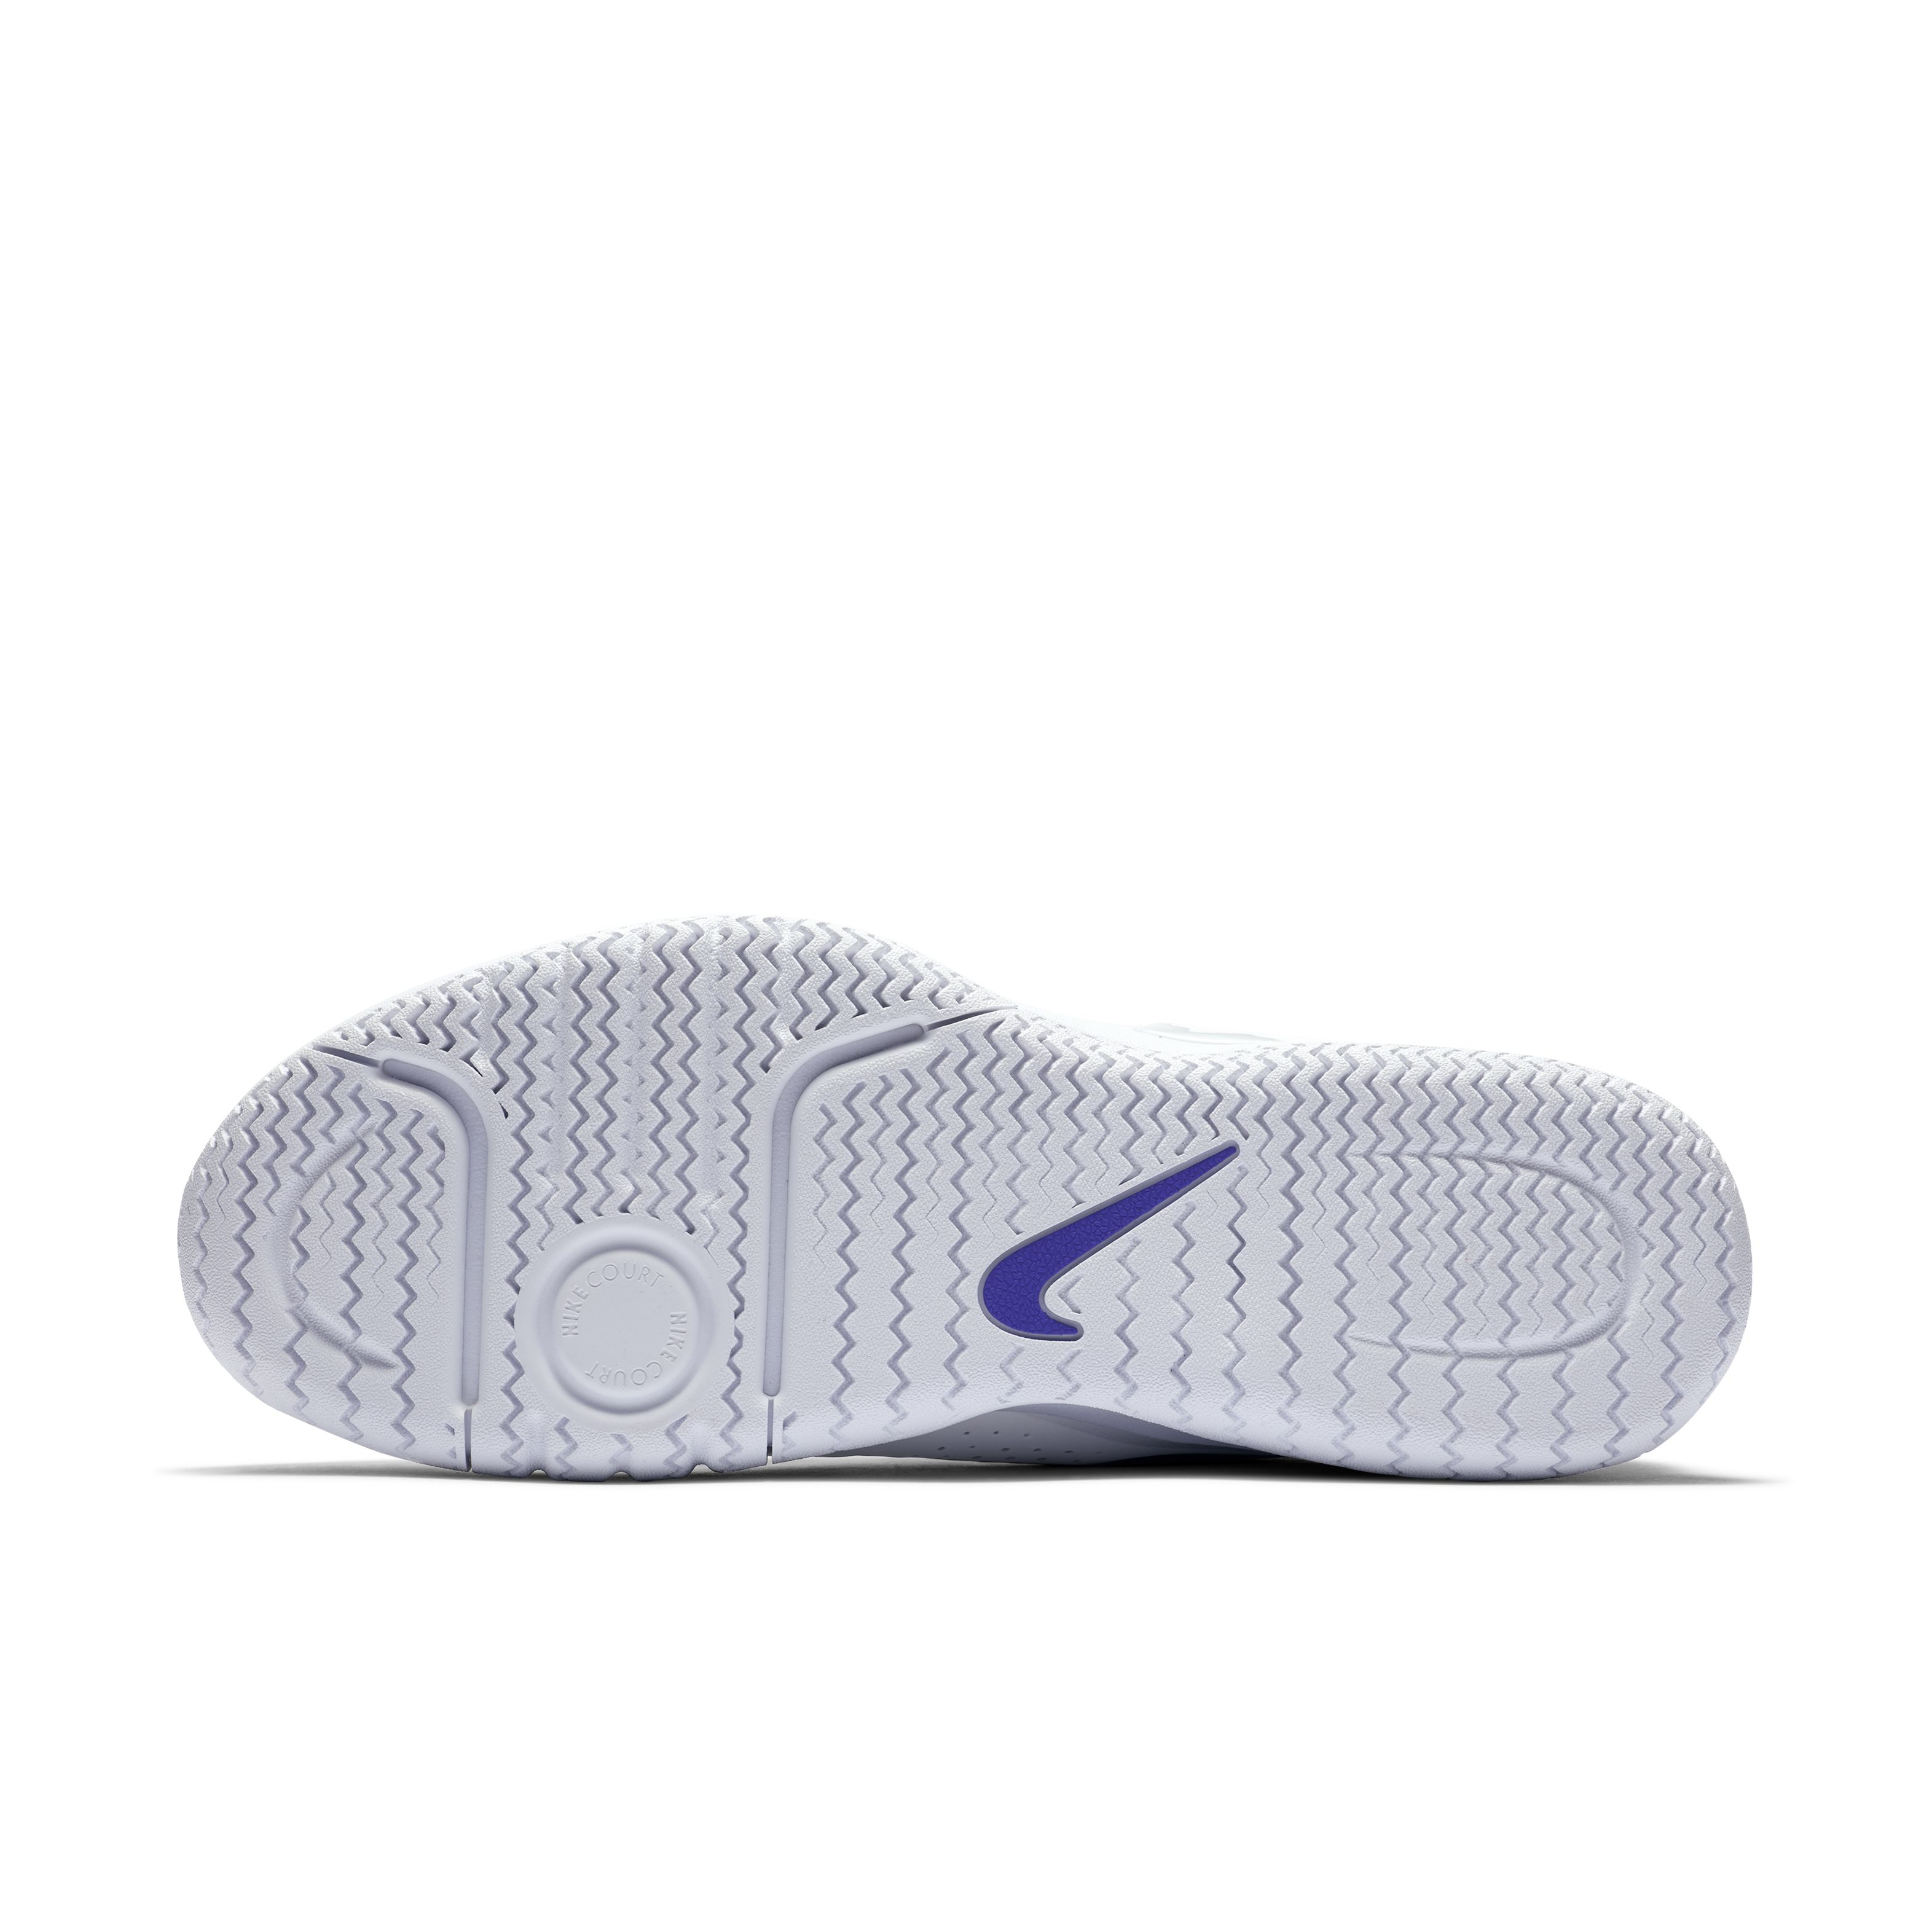 NikeCourt Tech Challenge 20  White / Persian Magenta / Black